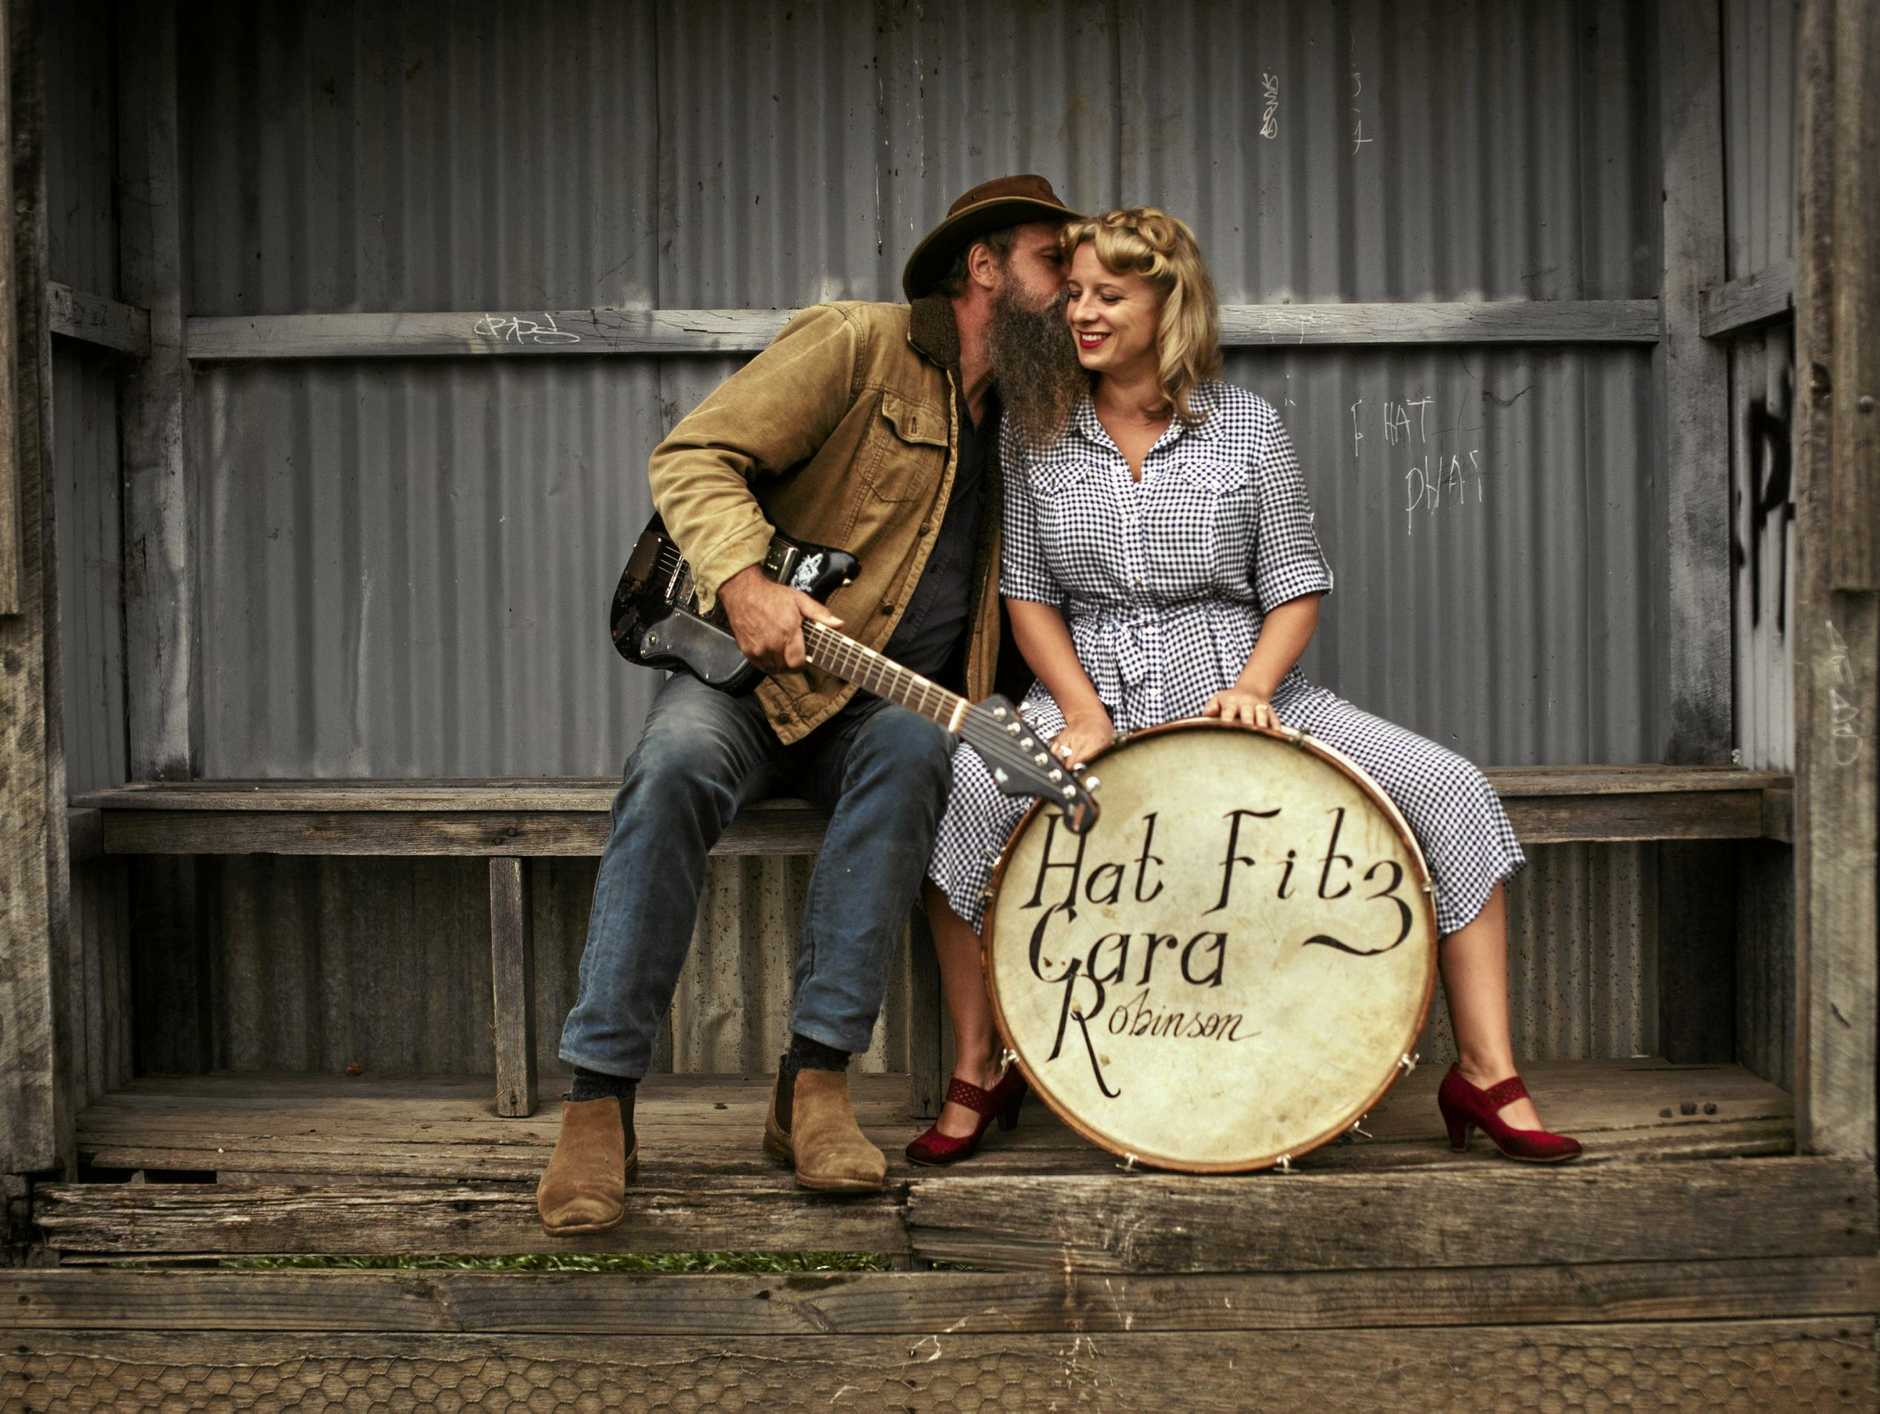 LOCAL GIGS: Aussie duo Hat Fitz and Cara will perform at this year's Festival of Small Halls Summer Tour.